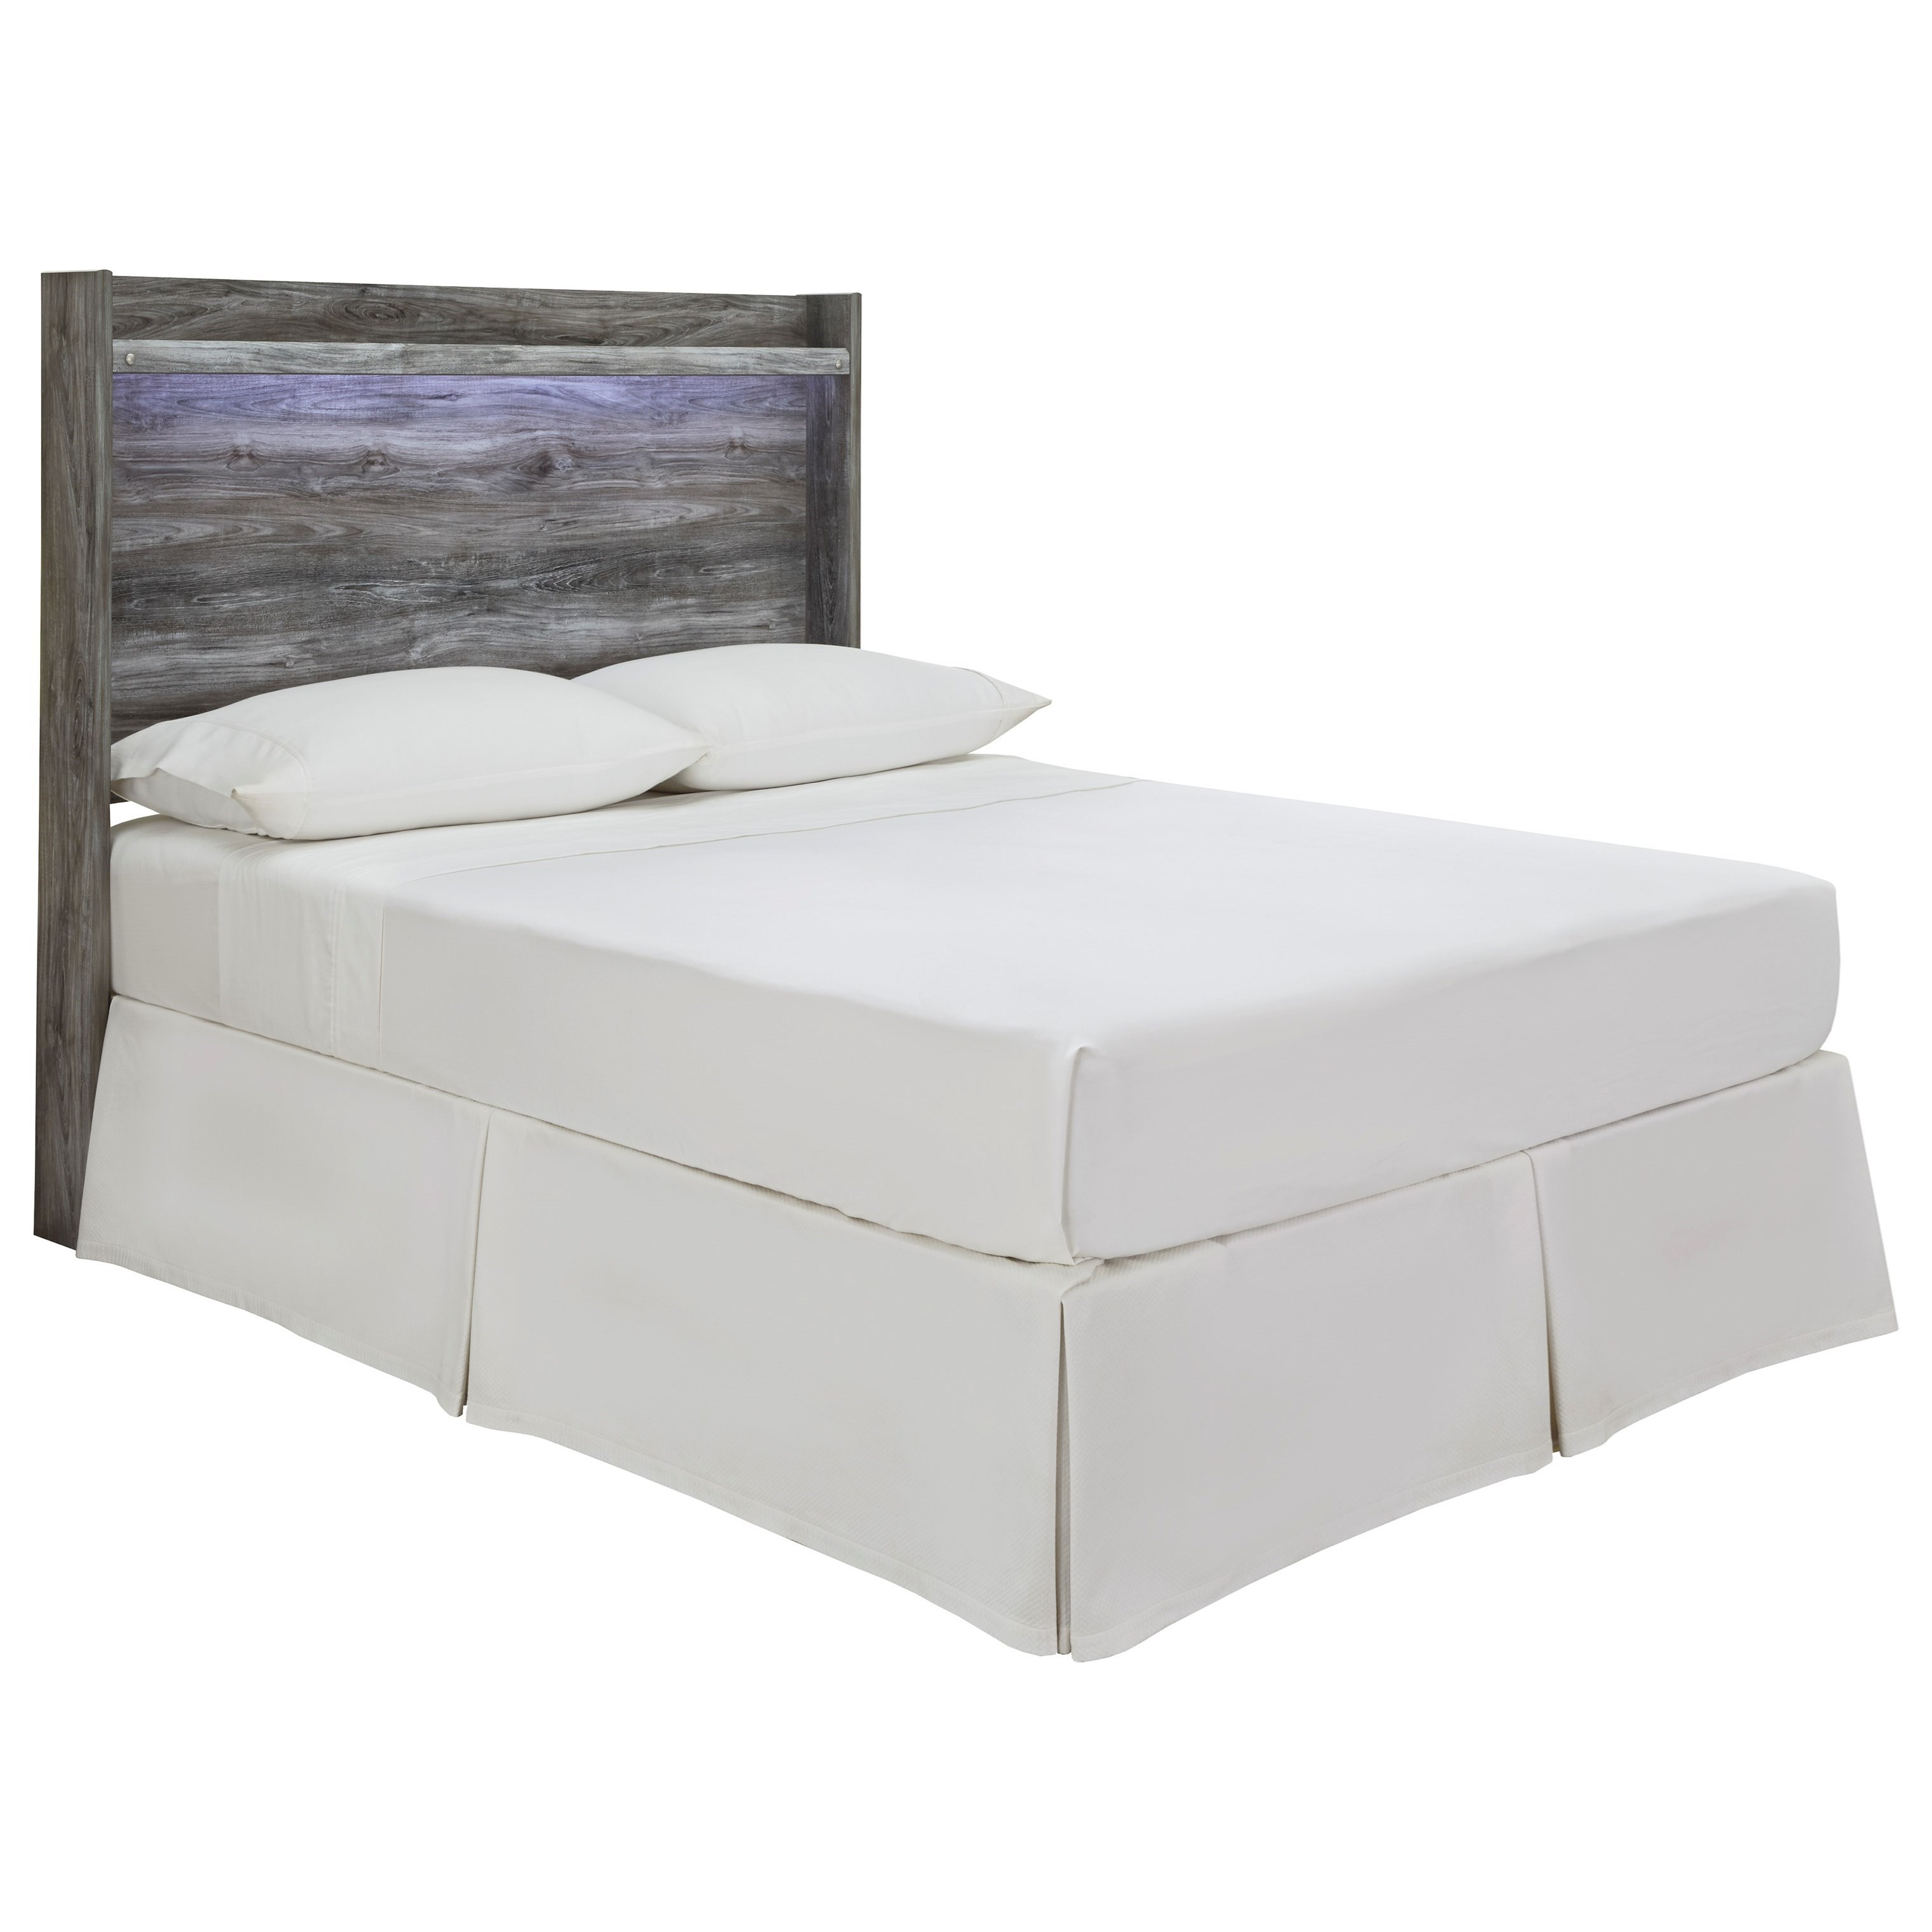 Baystorm Full Panel Headboard by StyleLine at EFO Furniture Outlet